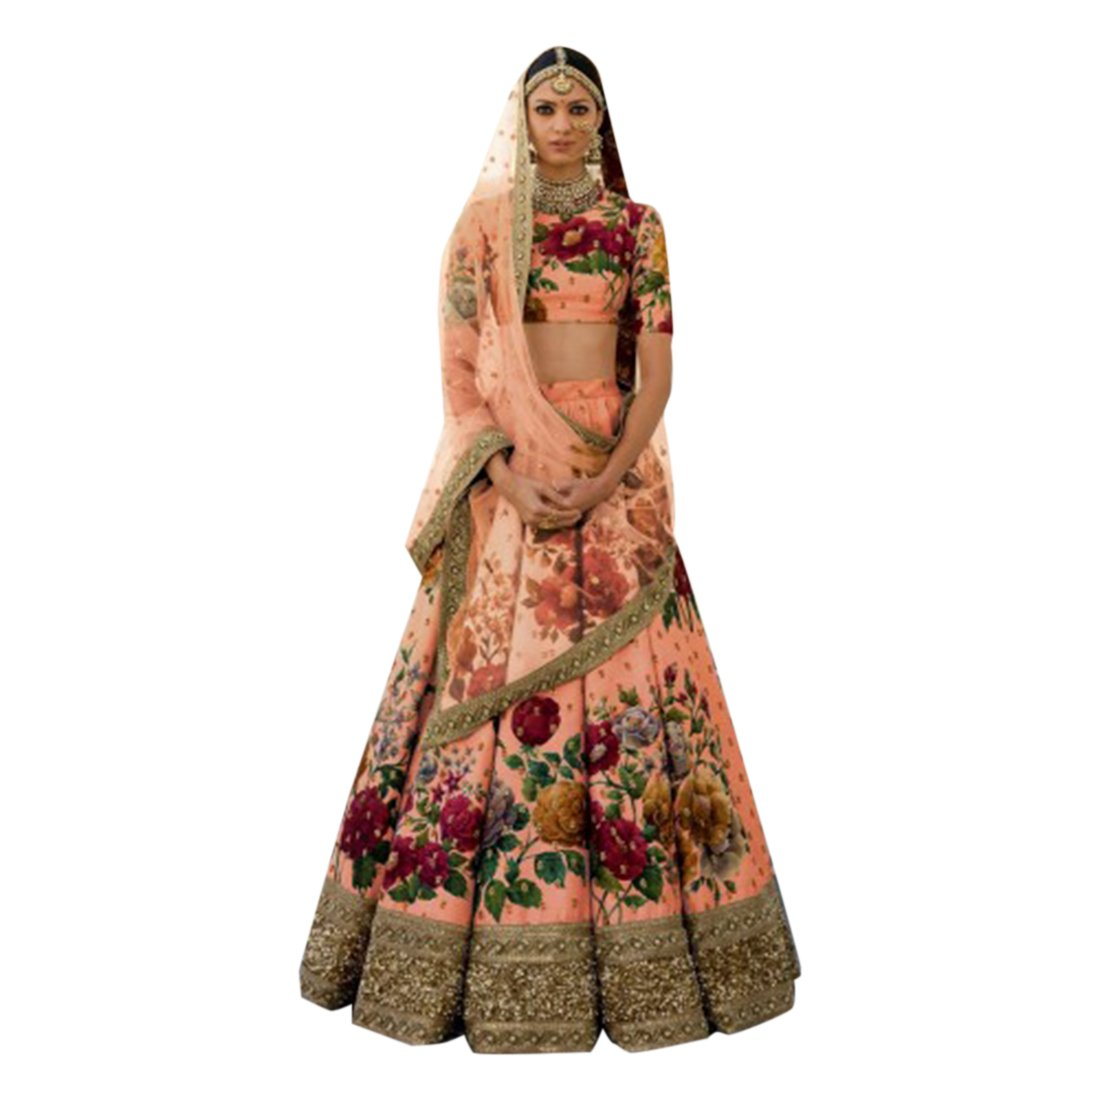 970b216594 Wedding Bollywood Lehenga Dupatta Designer Ghagra chaniya Choli Bridal  Custom to Measure Muslim Eid 2791 at Amazon Women s Clothing store